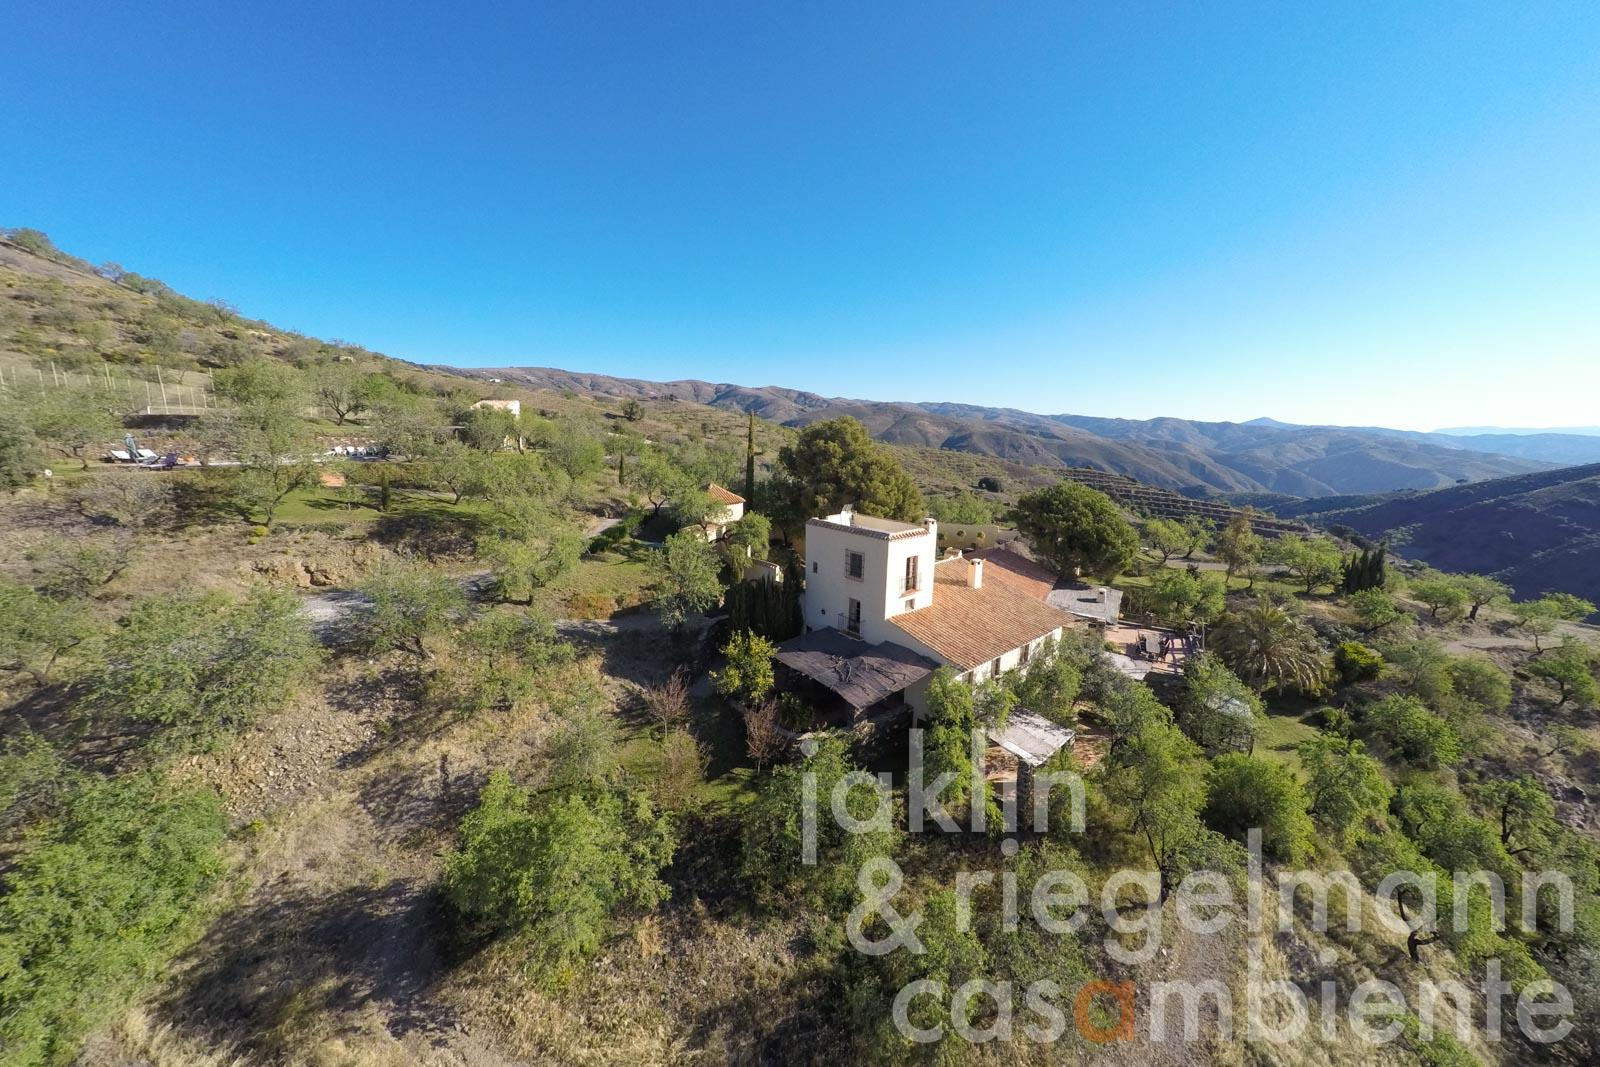 The country estate for sale in the Sierra Nevada in Spain with vineyard, olives, almond trees and sea view